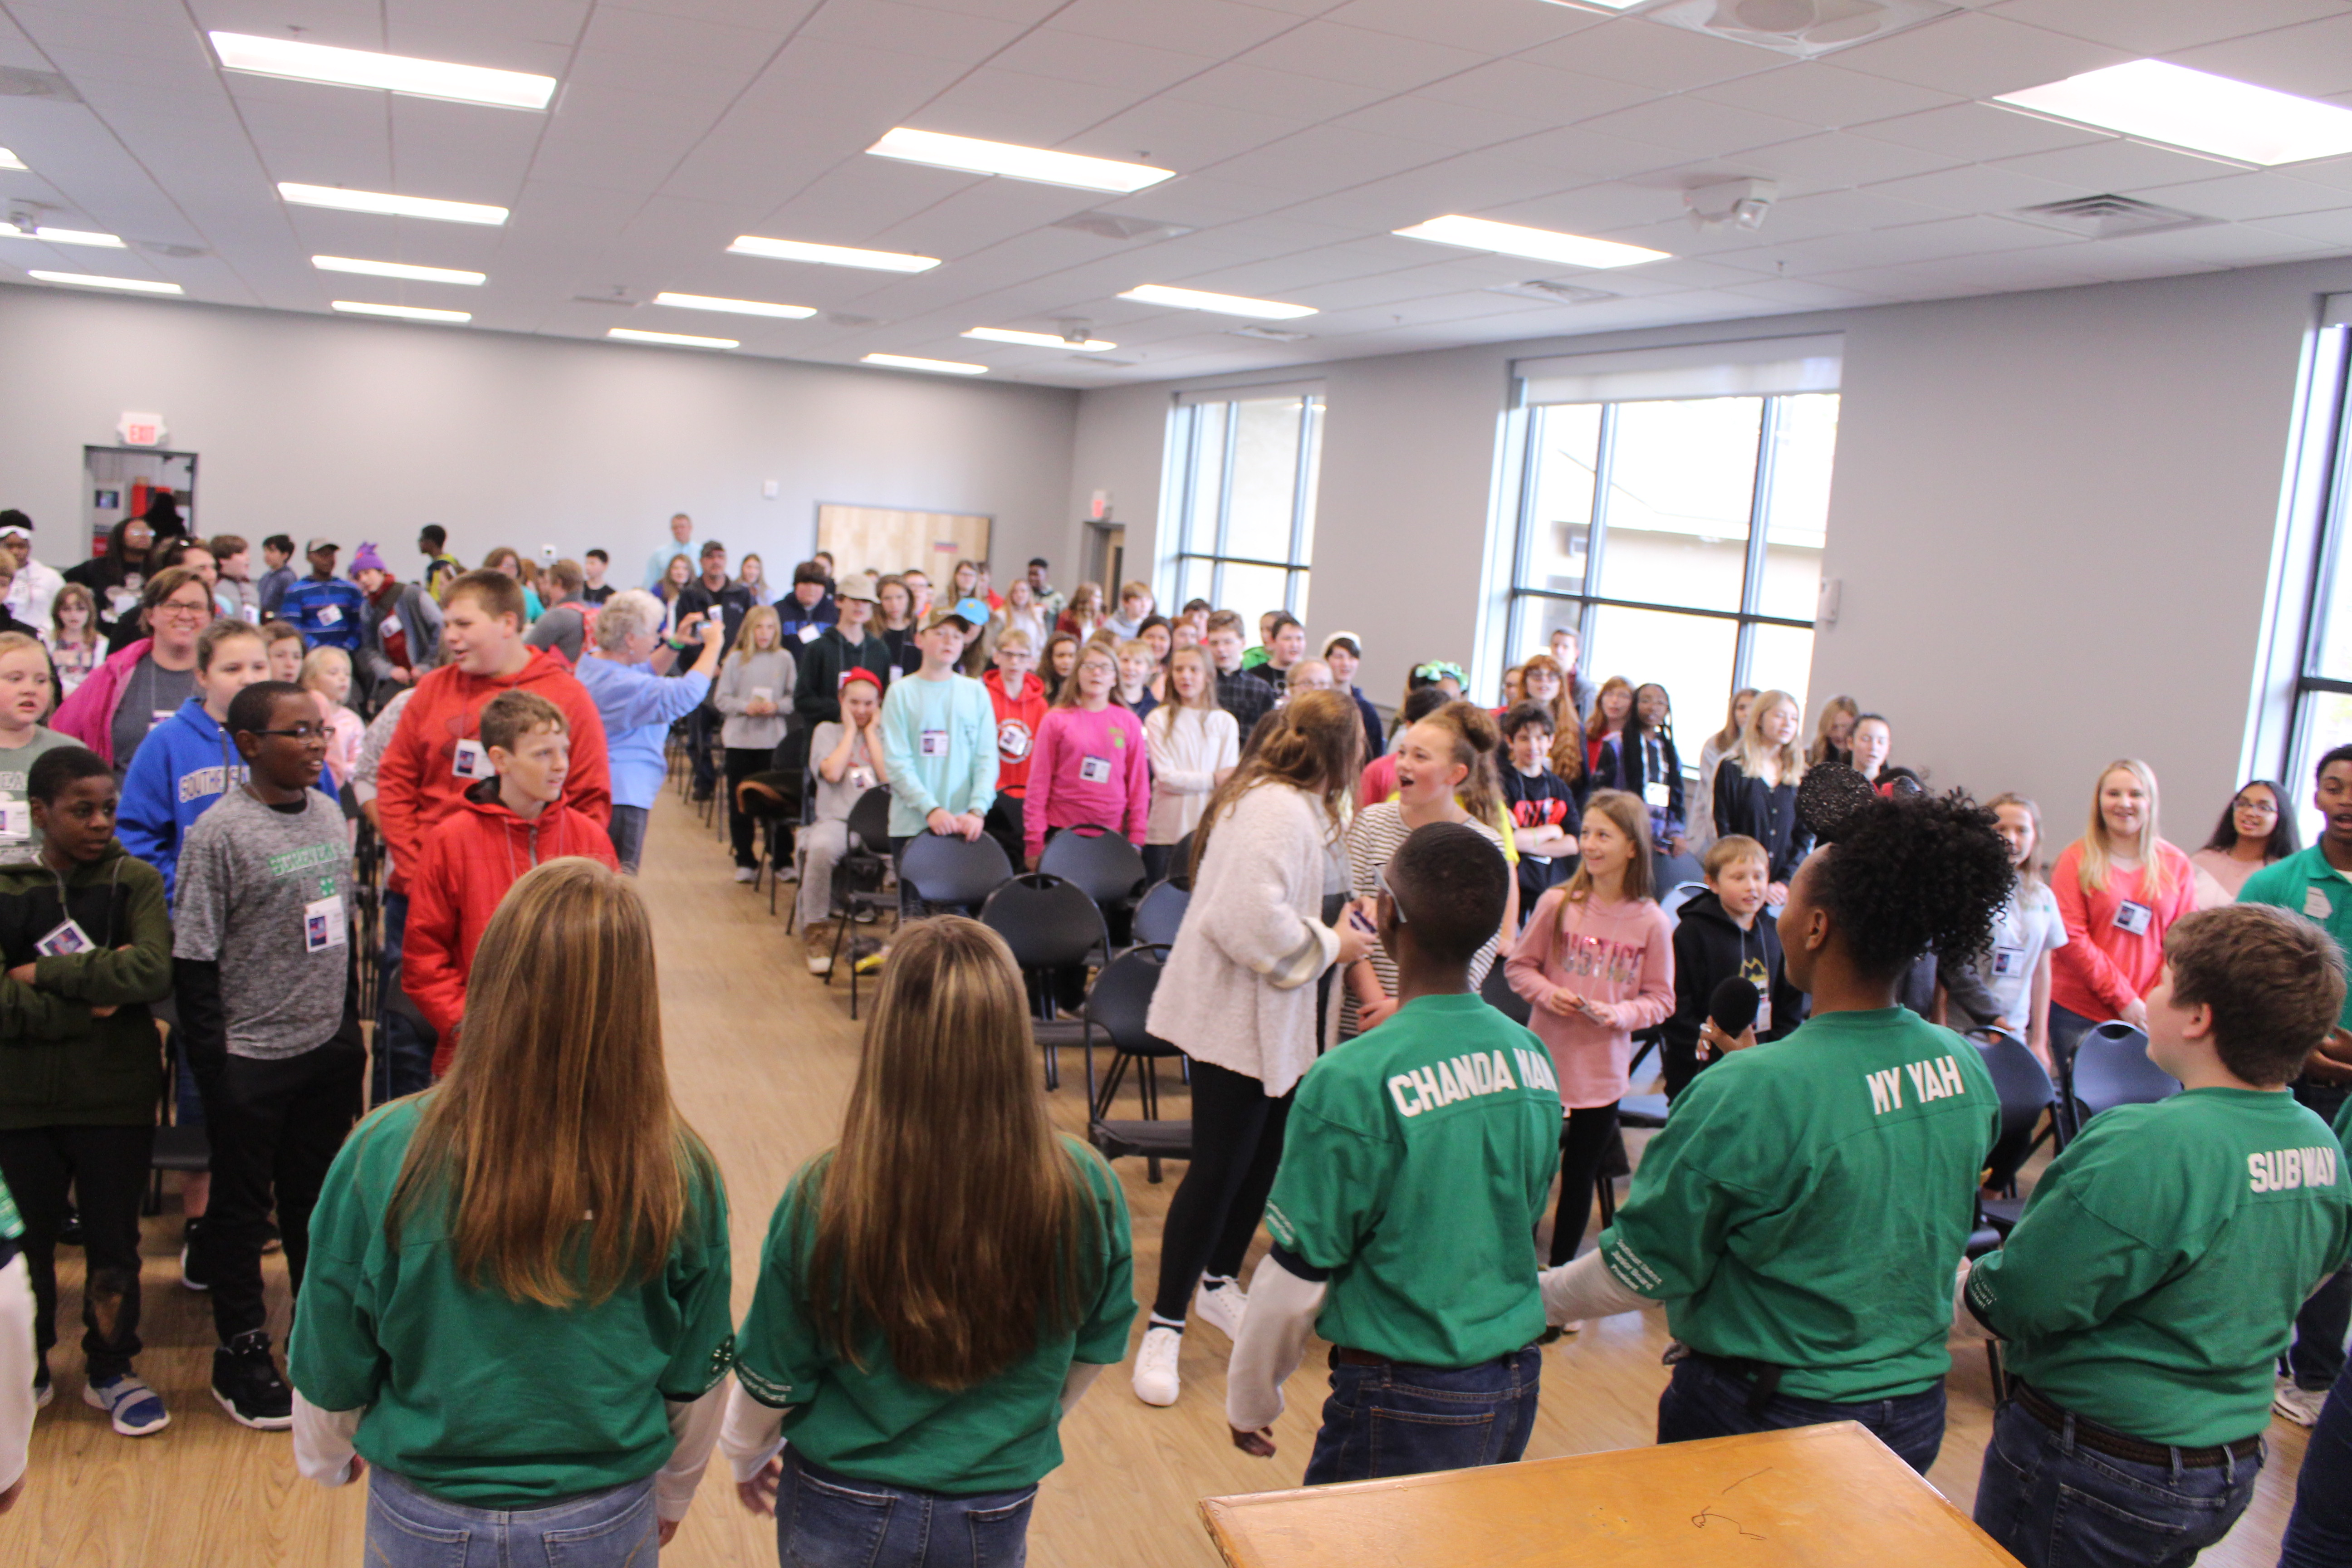 """Georgia 4-H's annual State 4-H Junior Conference is planned by the Georgia 4-H District Junior Boards of Directors, with each district board comprised of eight grade students who are elected by their district peers. This year's """"Where Dreams Come True"""" theme focused on science-related topics tied to popular children's movies."""